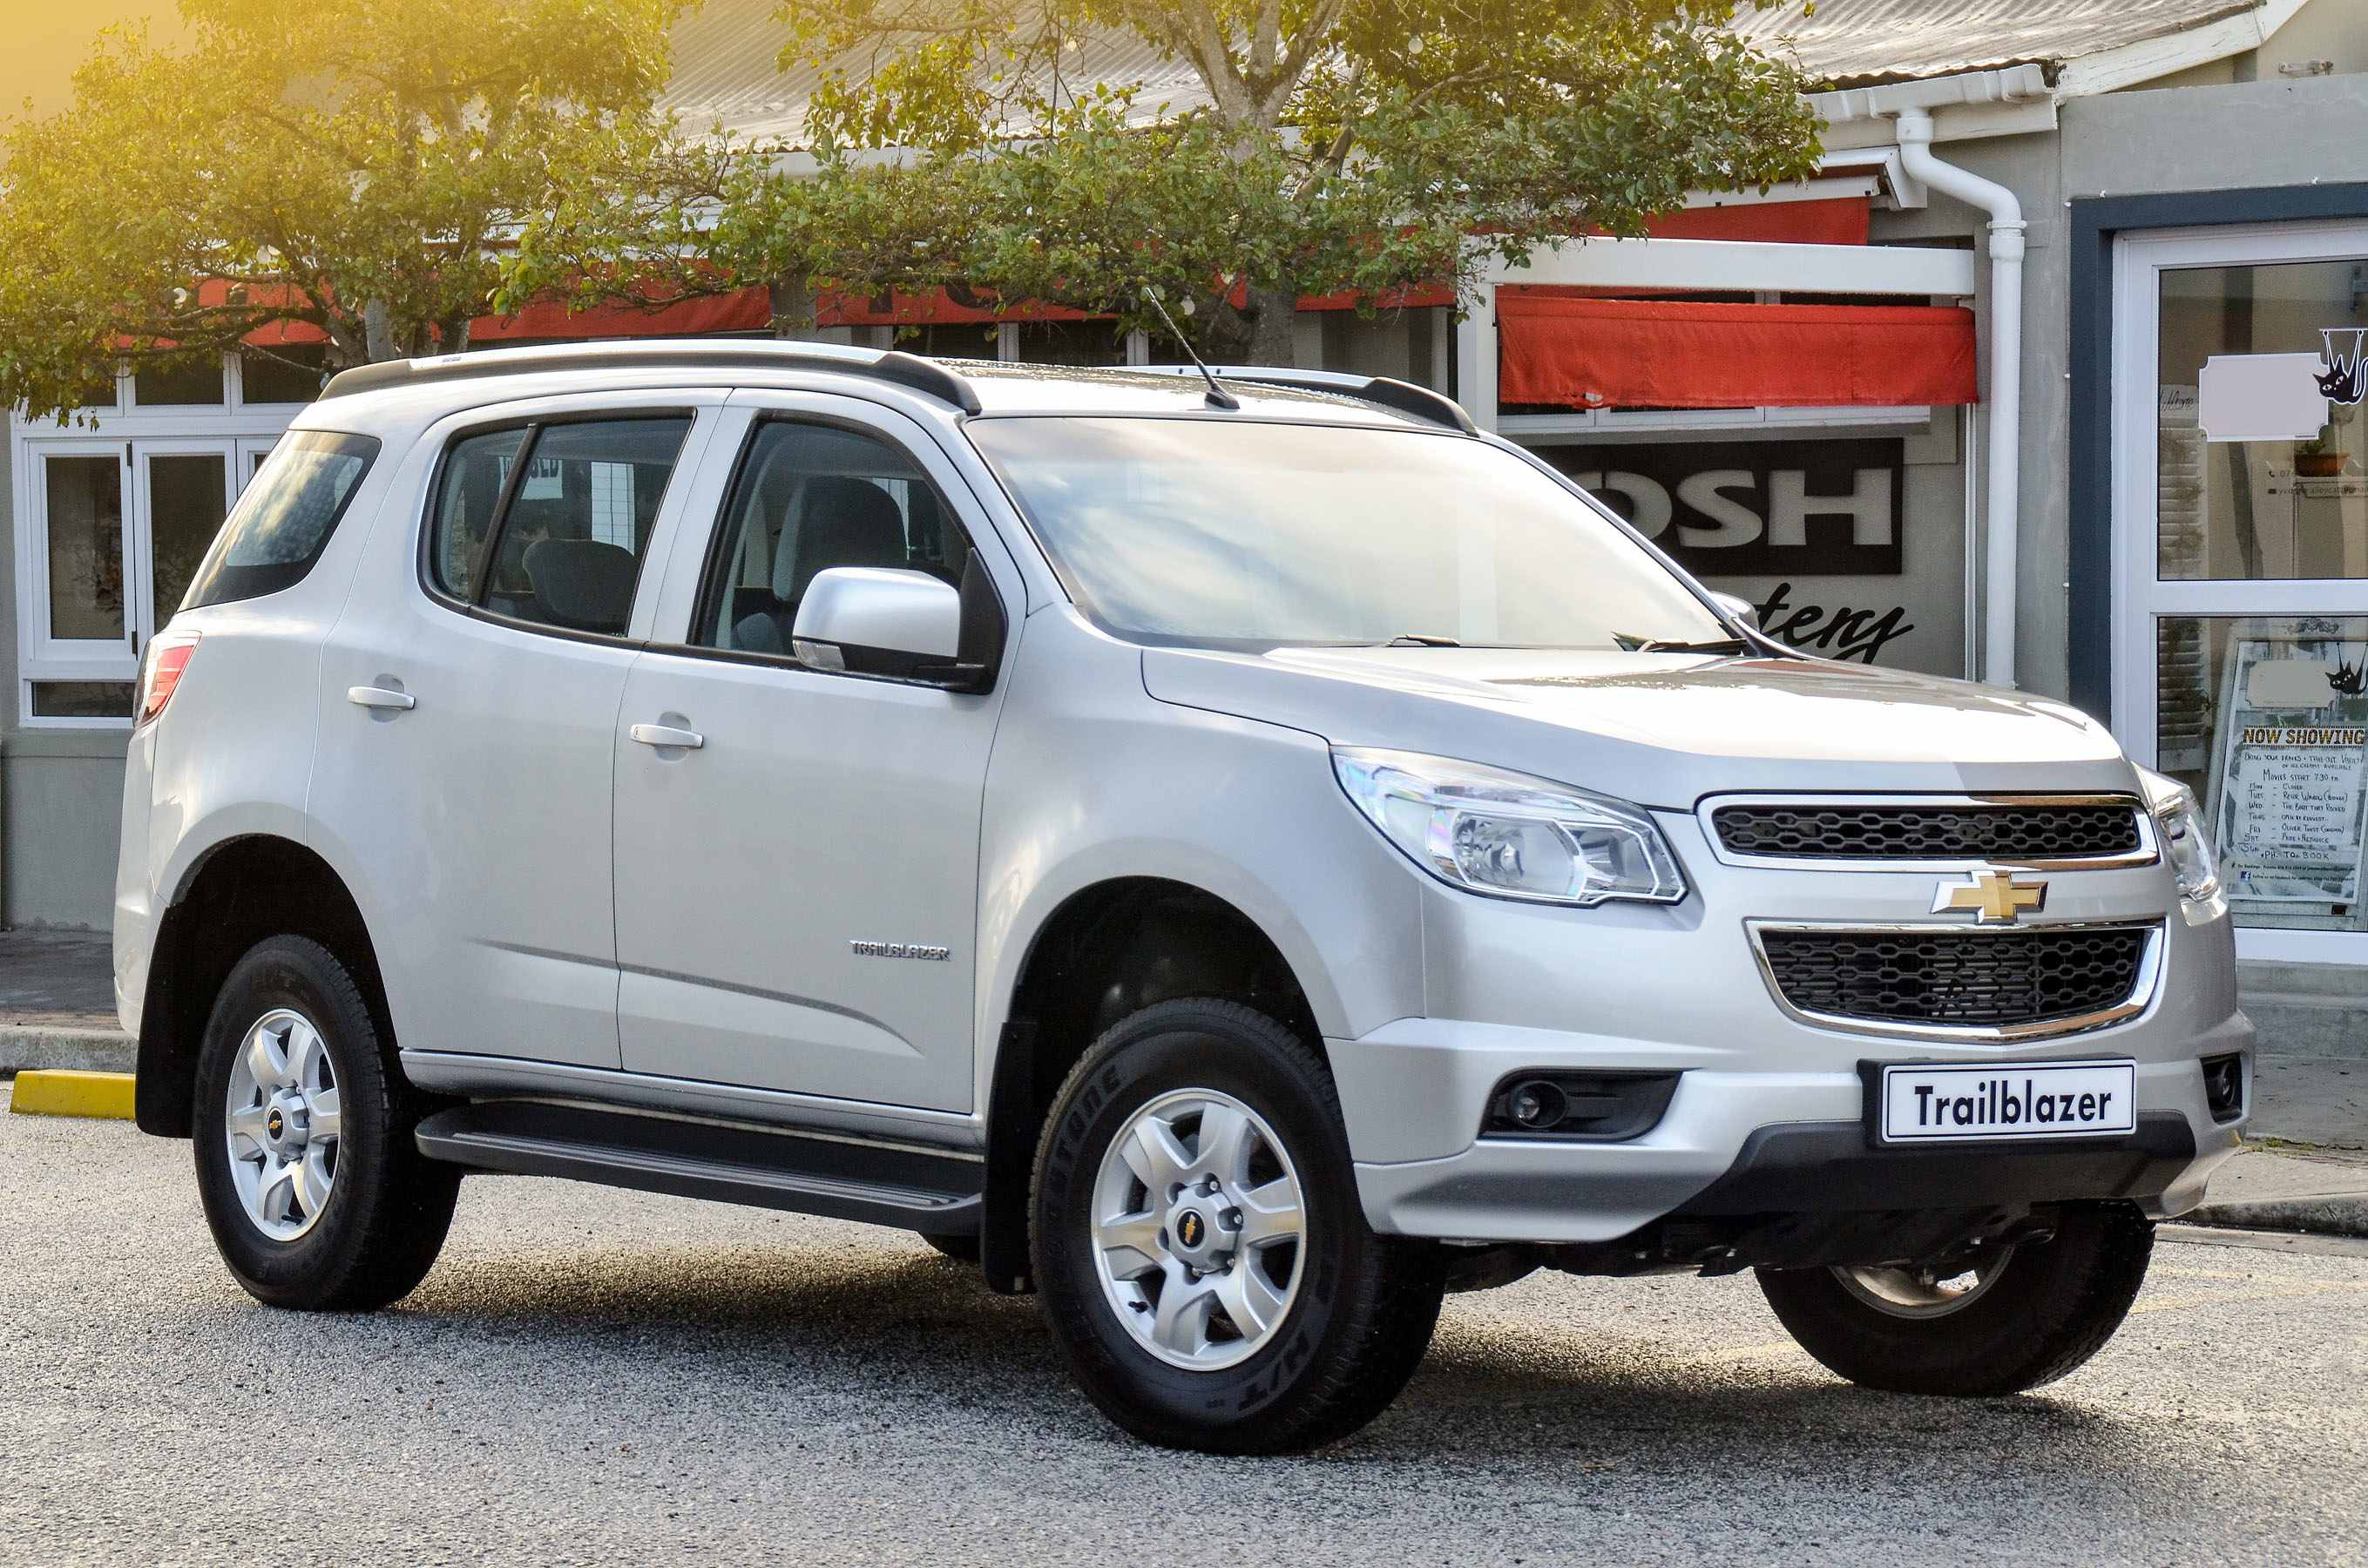 Chevrolet Trailblazer Updated Latest News Surf4cars Co